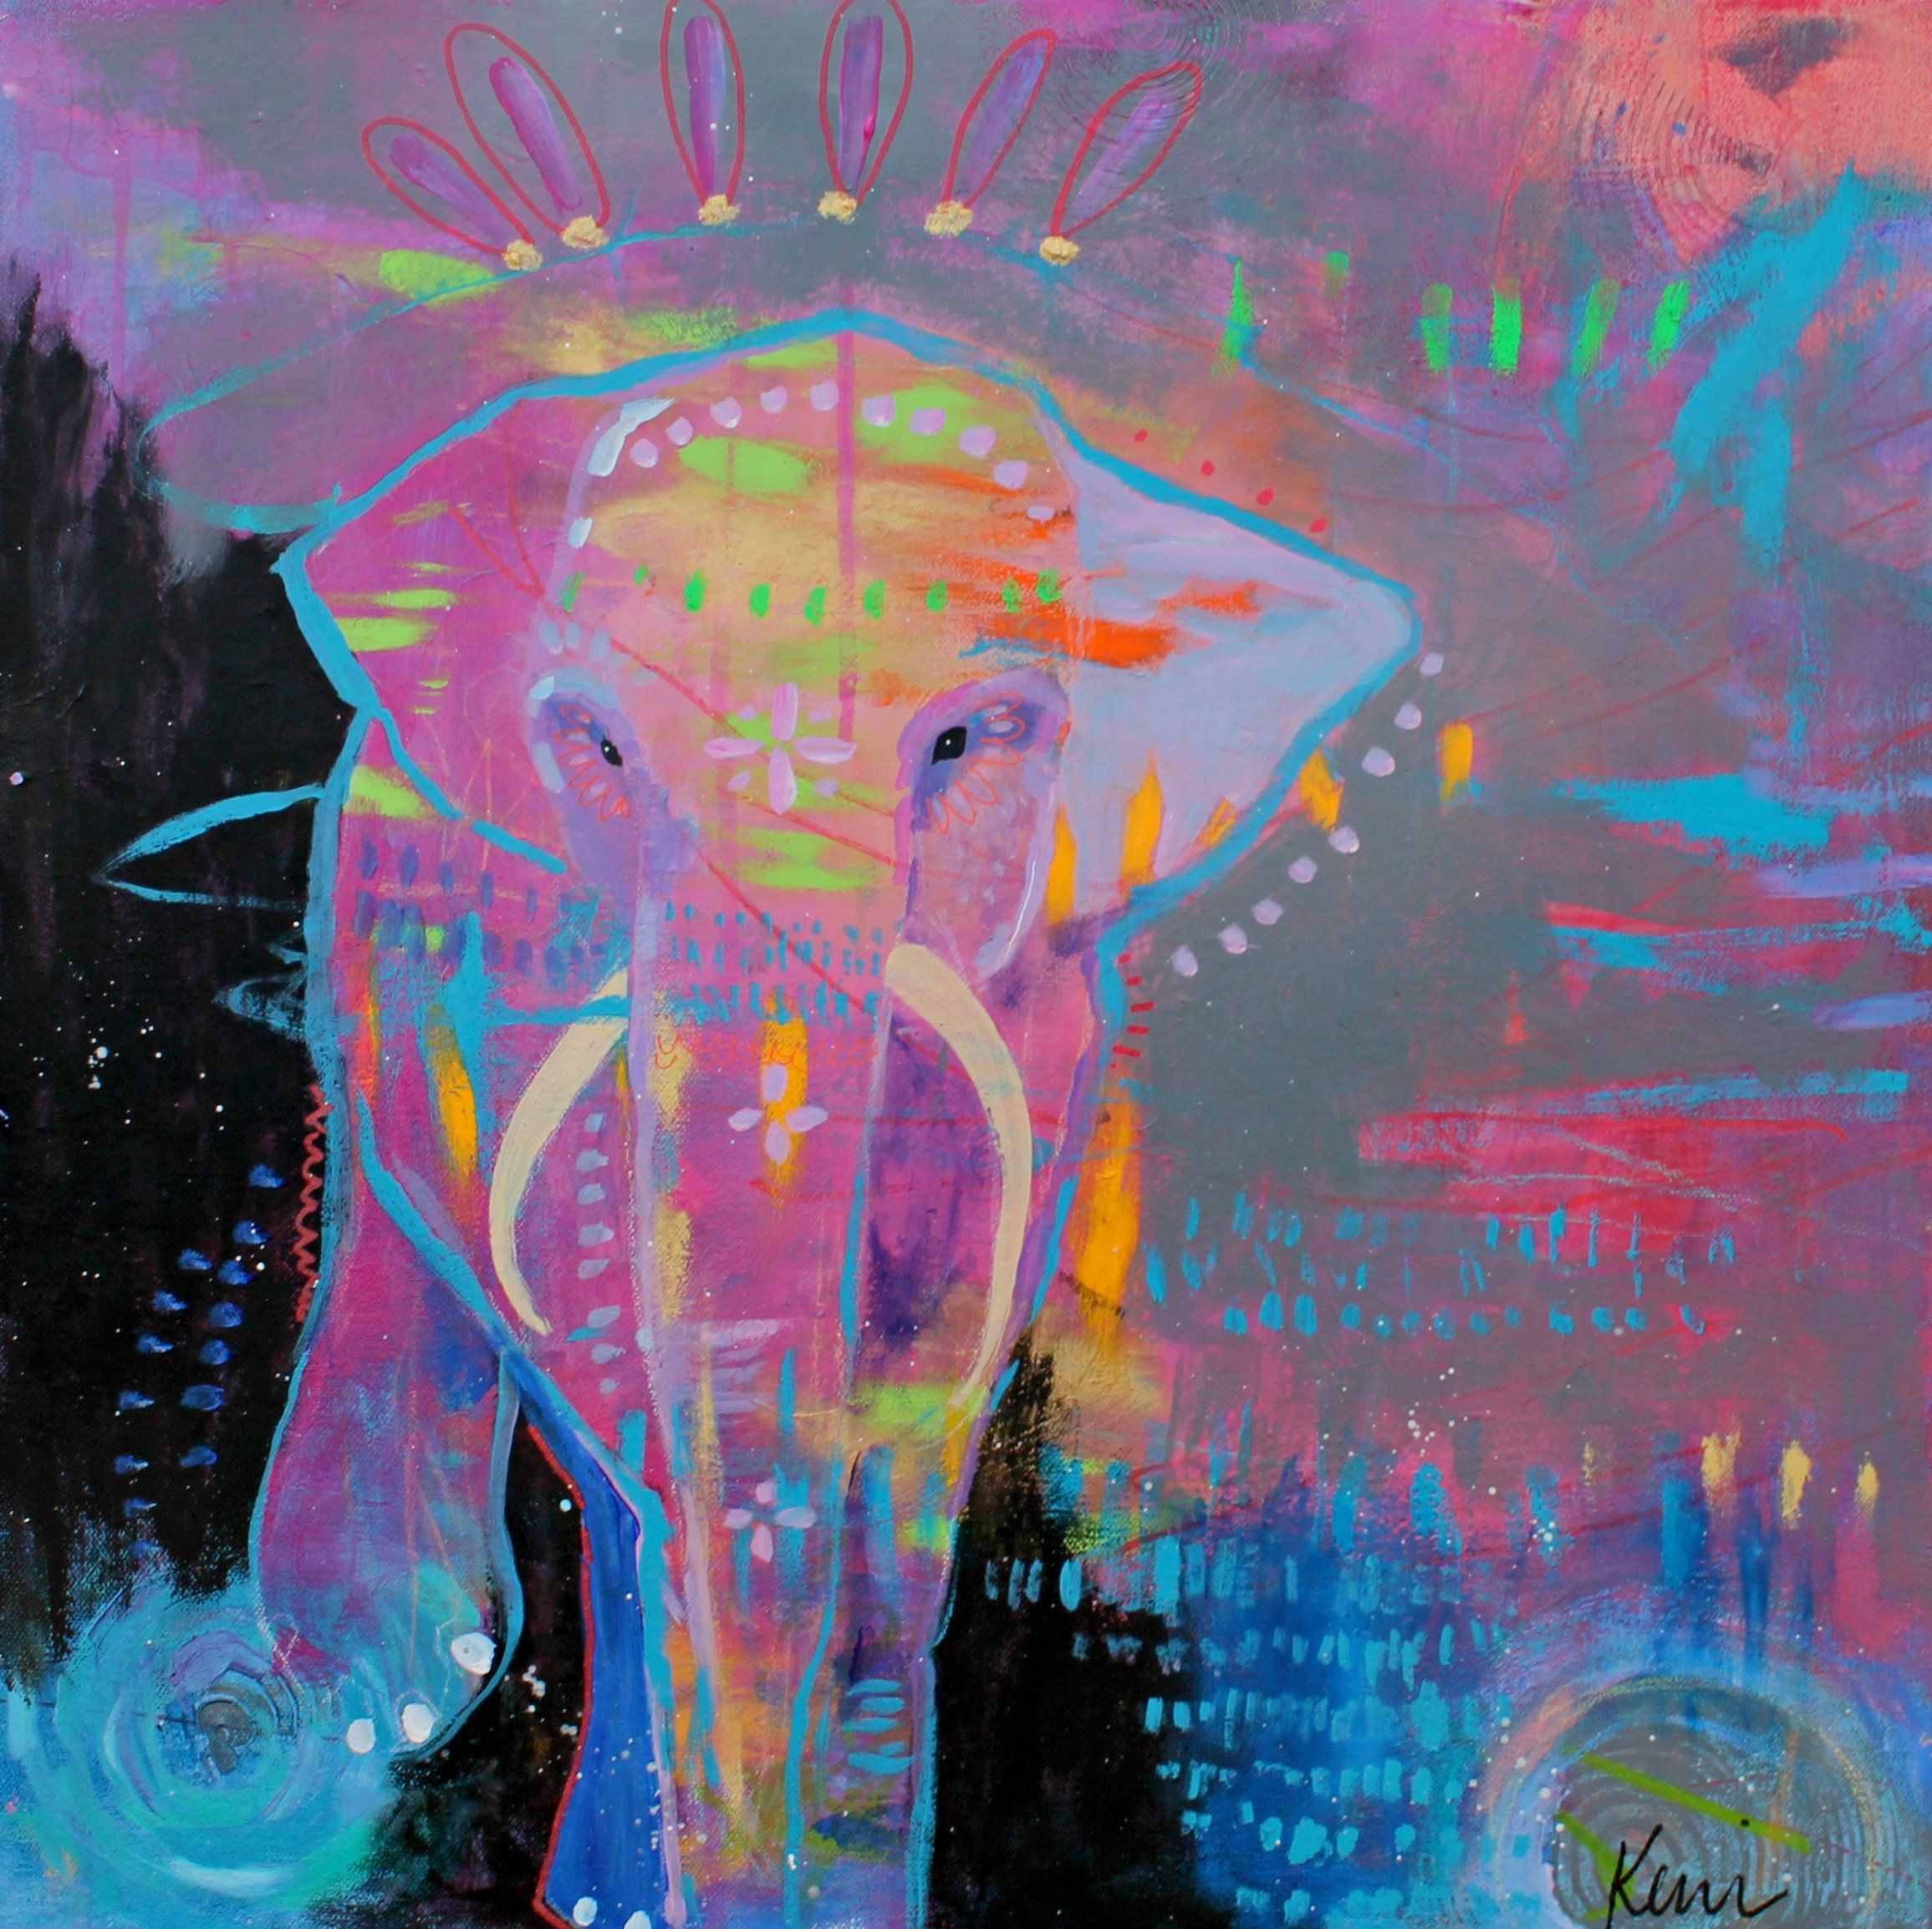 Abstract Elephant Painting Colorful Outsider Original On Canvas Stride On Elephant Spirit 20x20 Painting Art Lovers Art